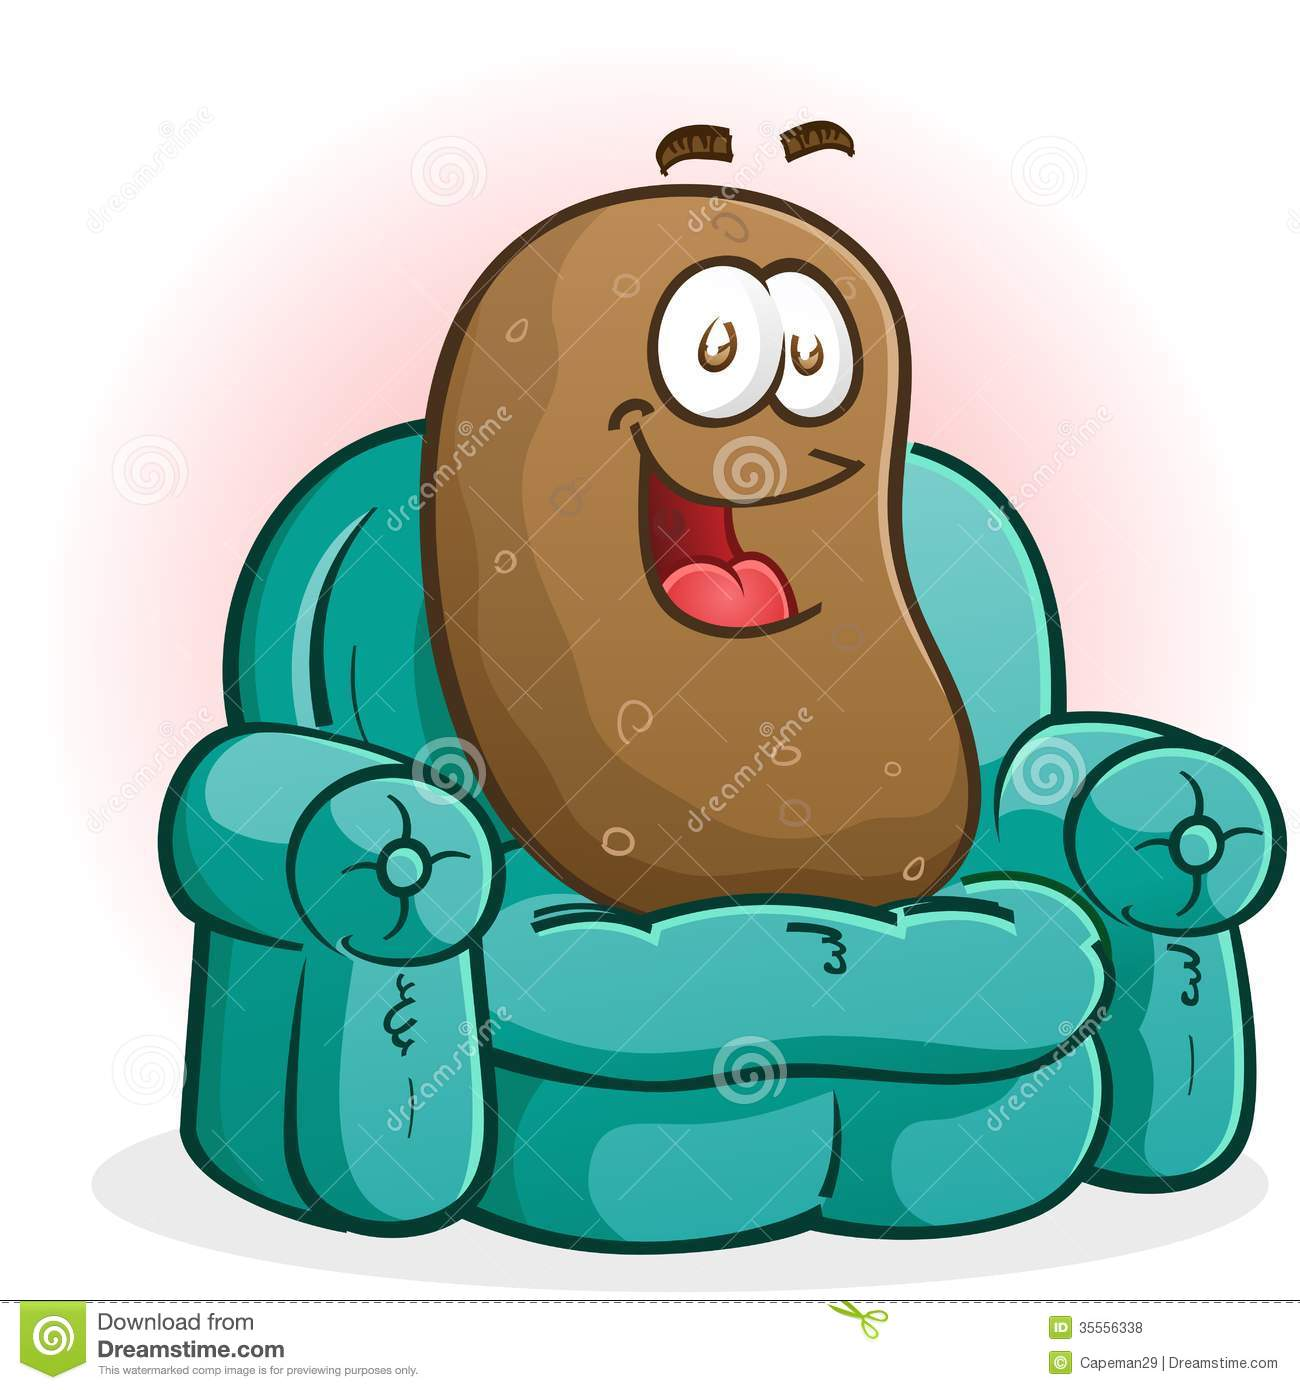 Couch Potato Cartoon Character Sitting On The Couch Watching Tv